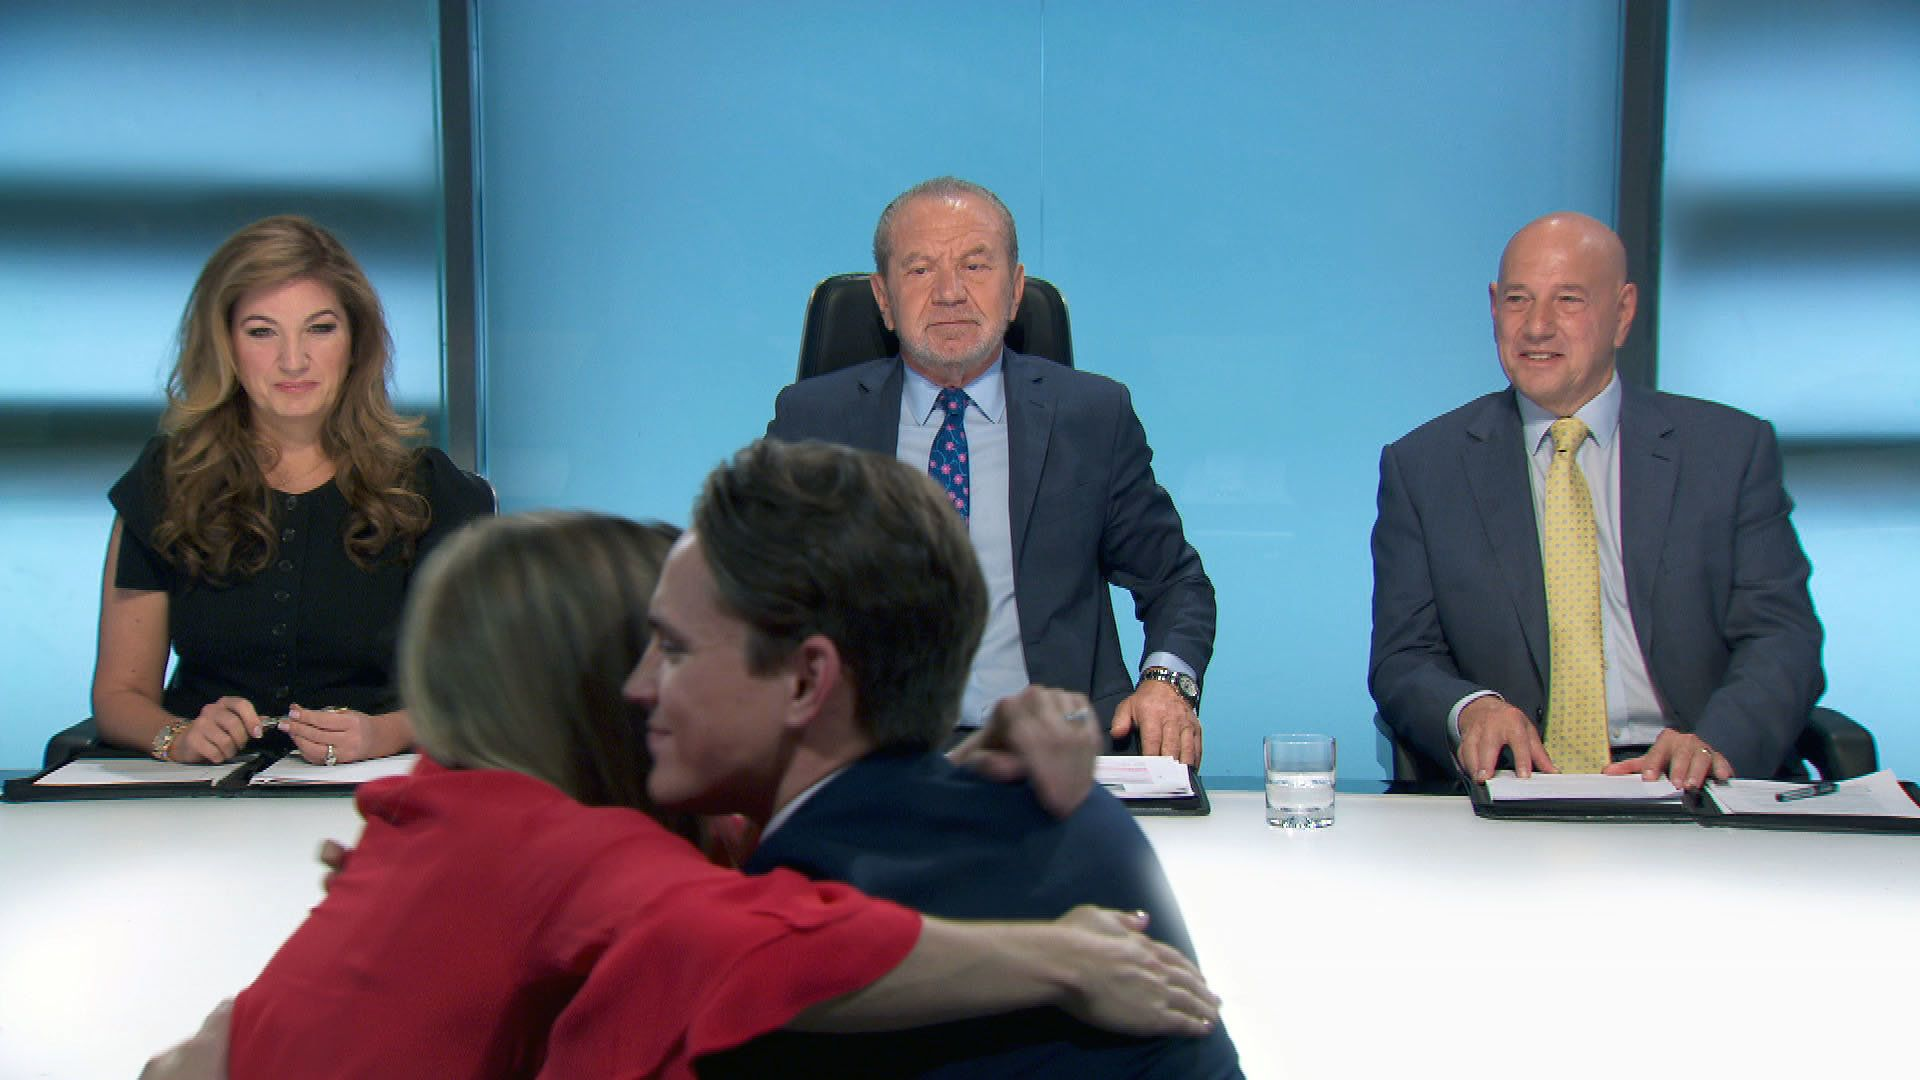 Lord Sugar was impressed by both candidates